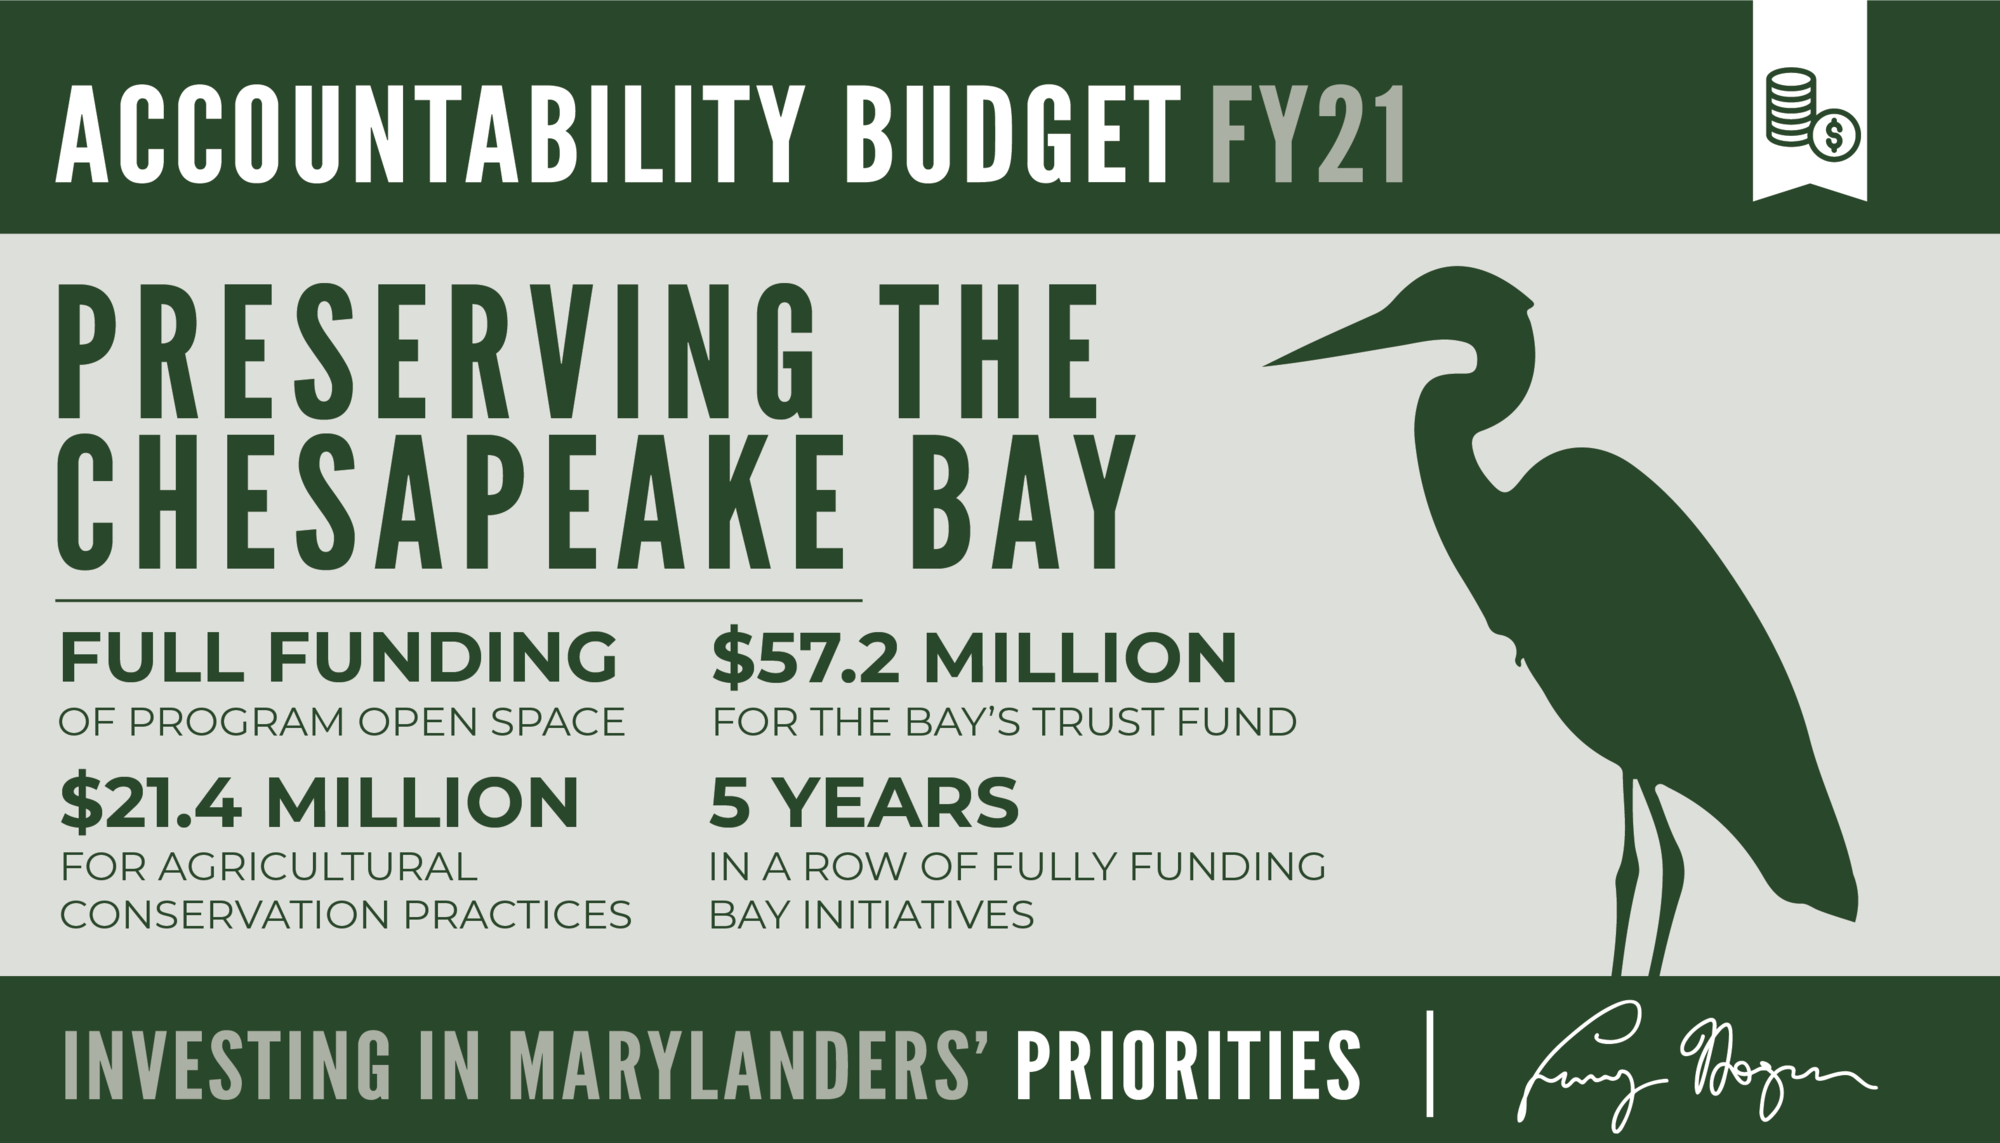 Accountability Budget Infographic-- Bay Detail